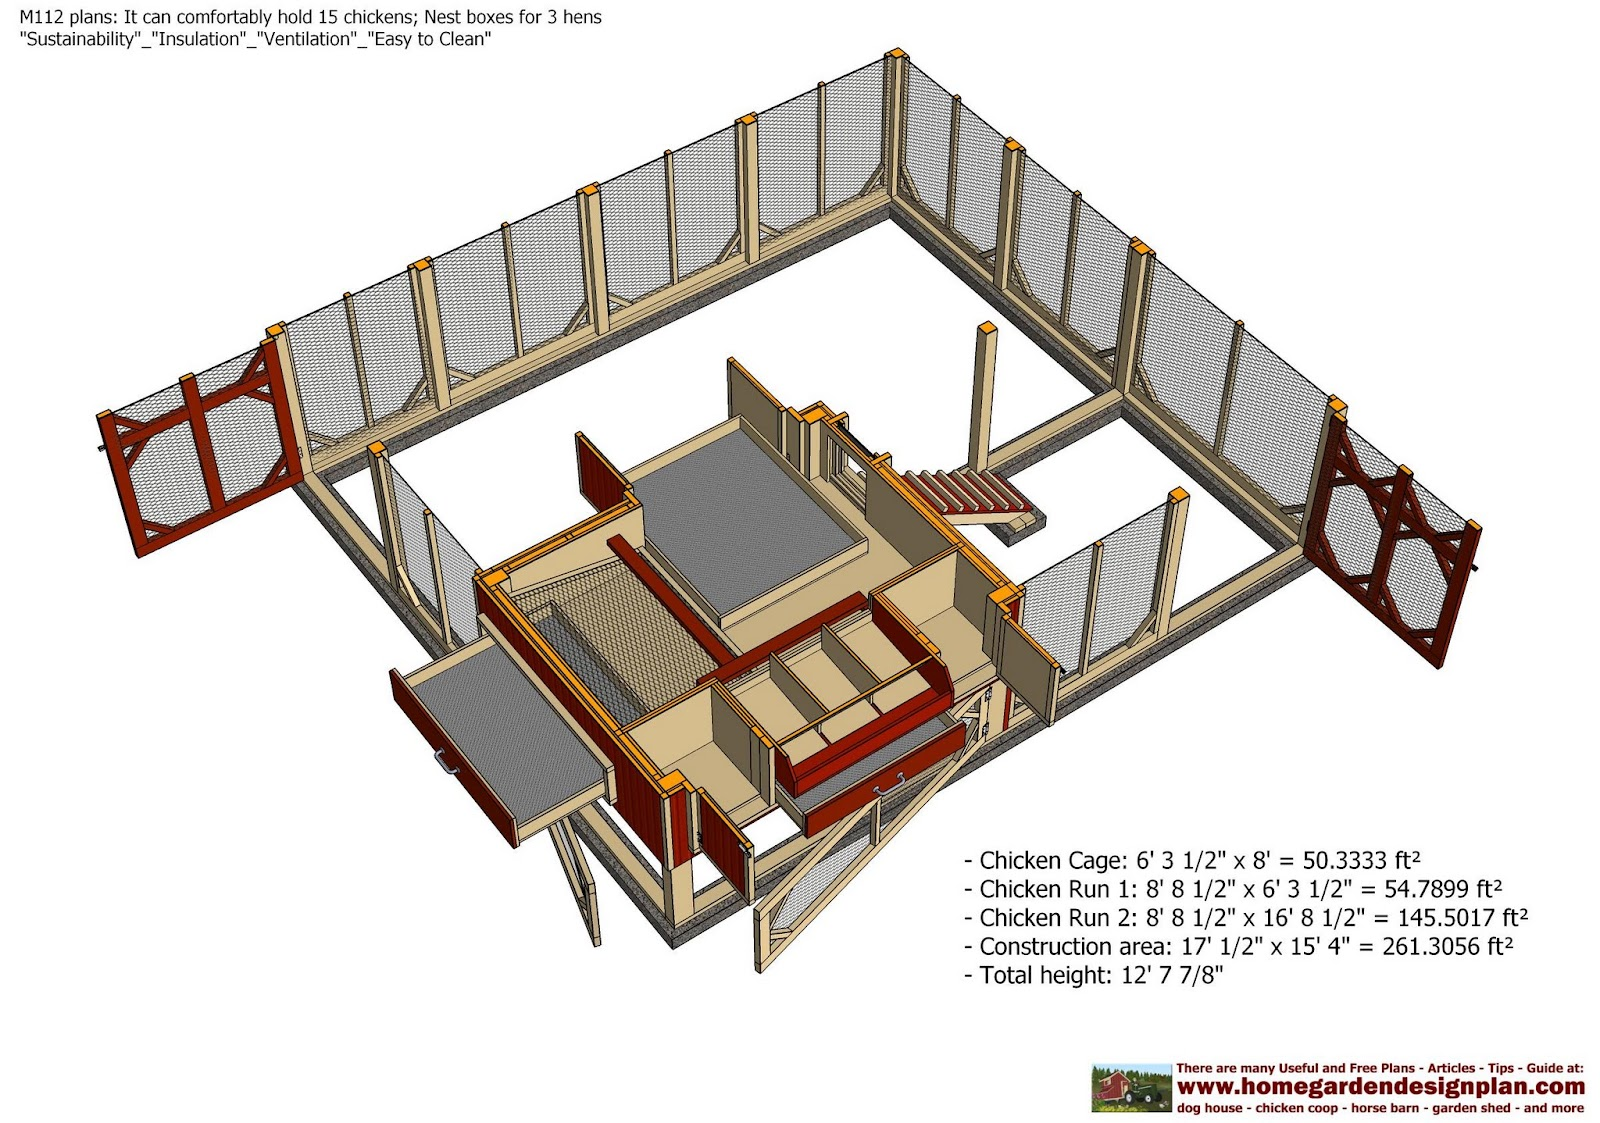 Home garden plans m112 chicken coop plans construction for Chicken run for 6 chickens